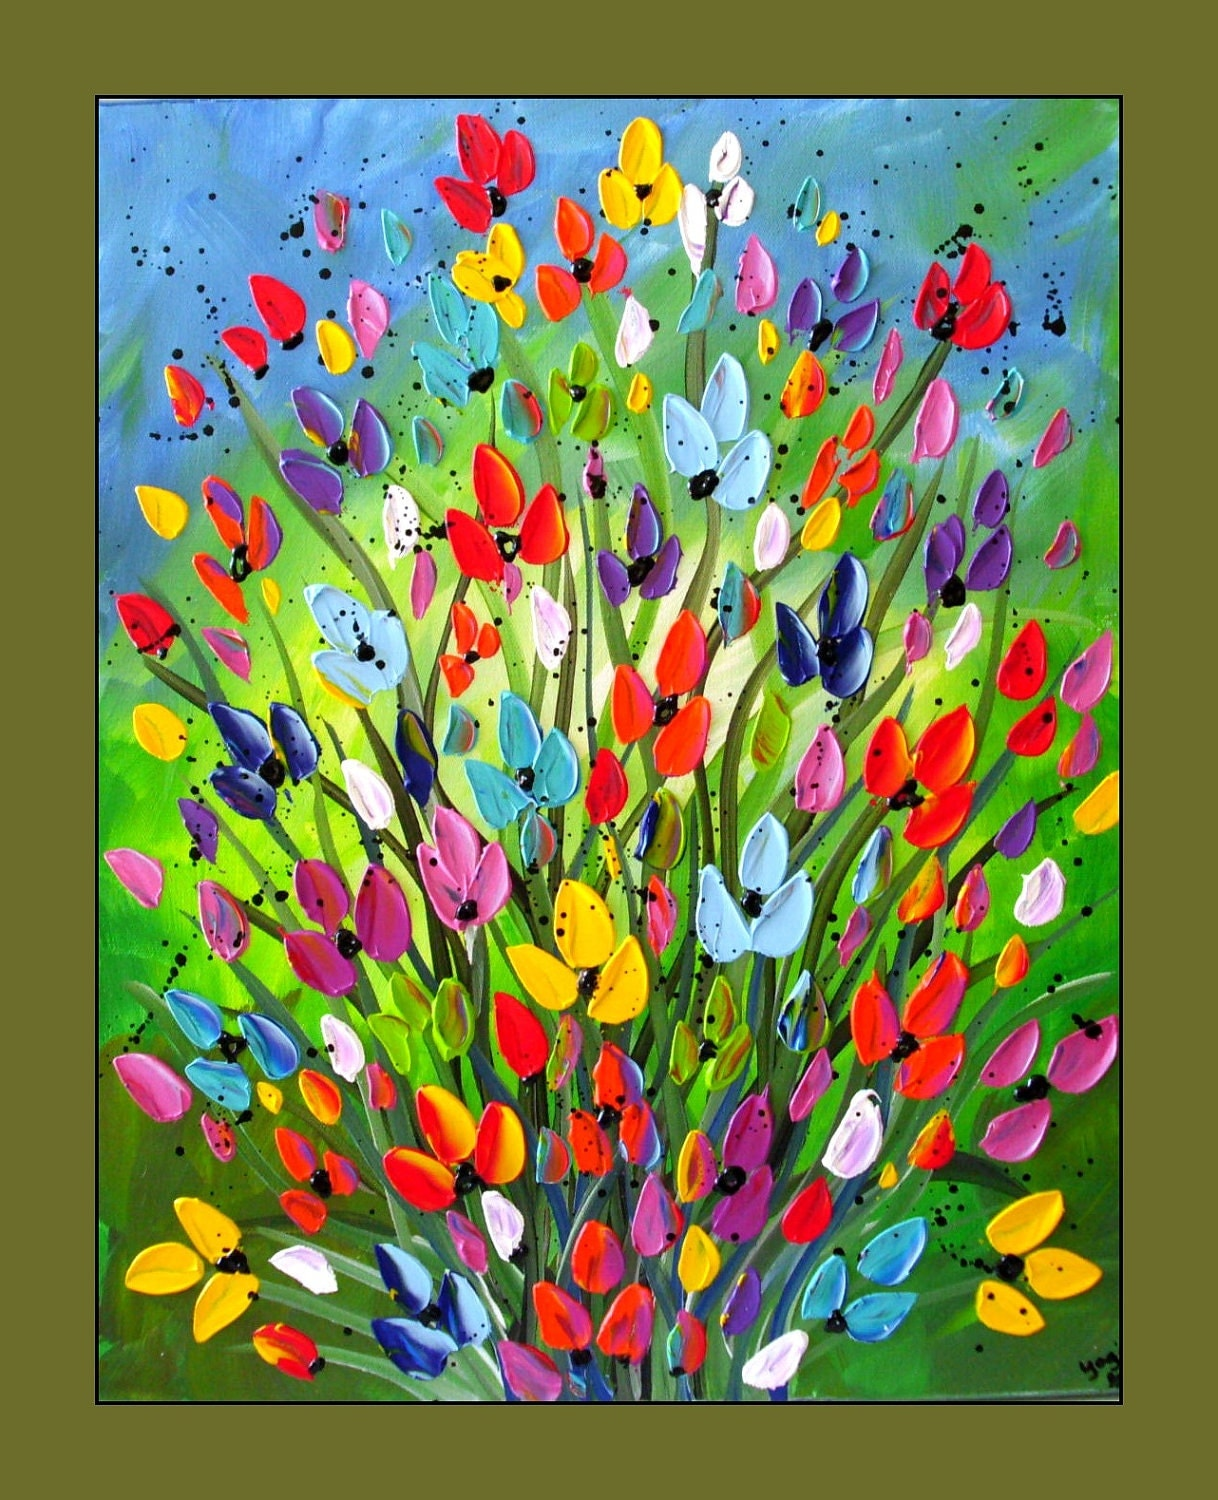 Colorful flower painting textured flower painting on canvas for Flower paintings on canvas